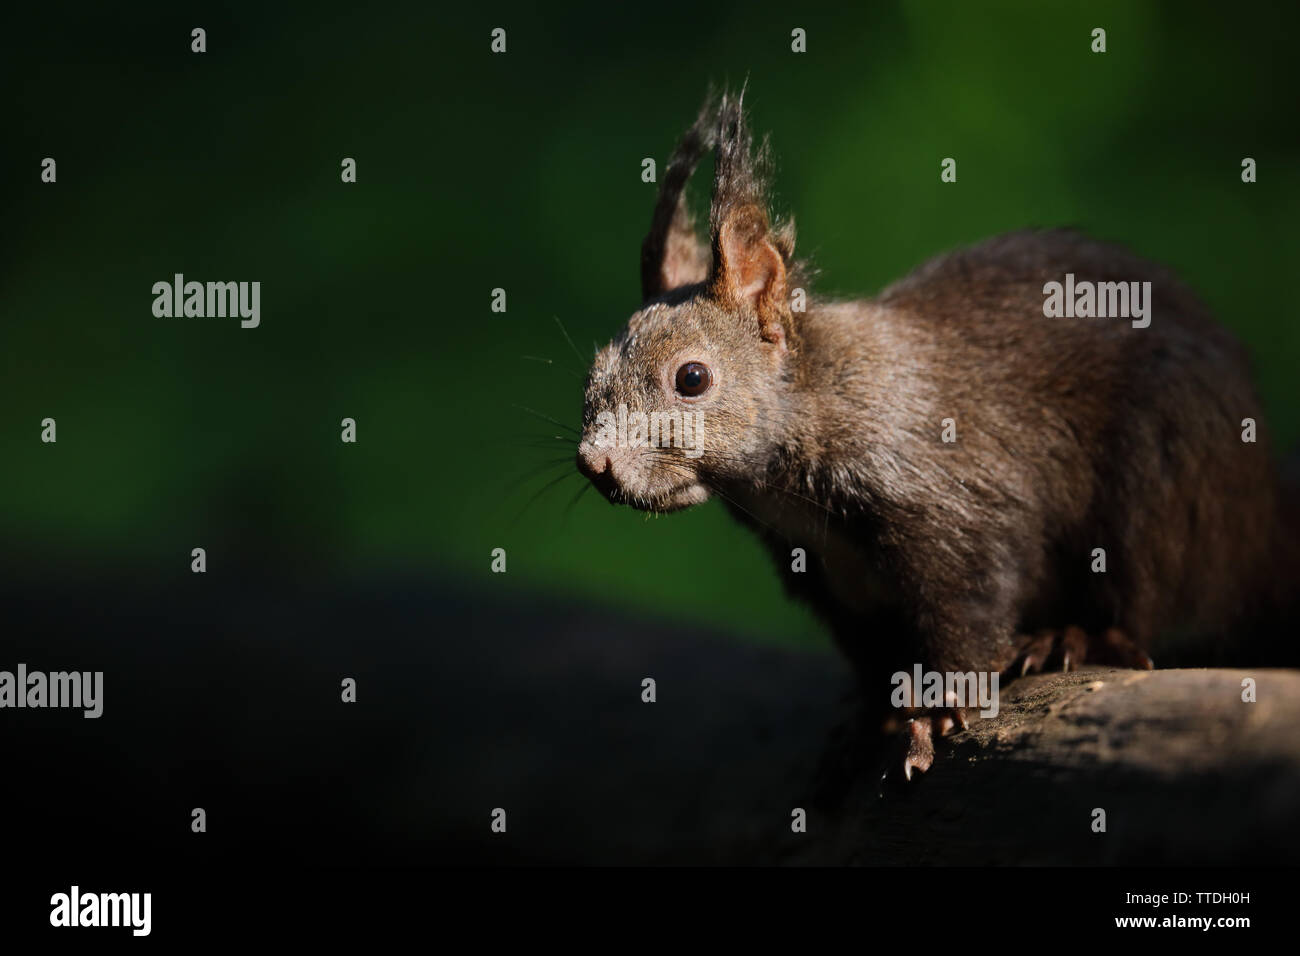 red-squirrel-sciurus-vulgaris-closeup-ph